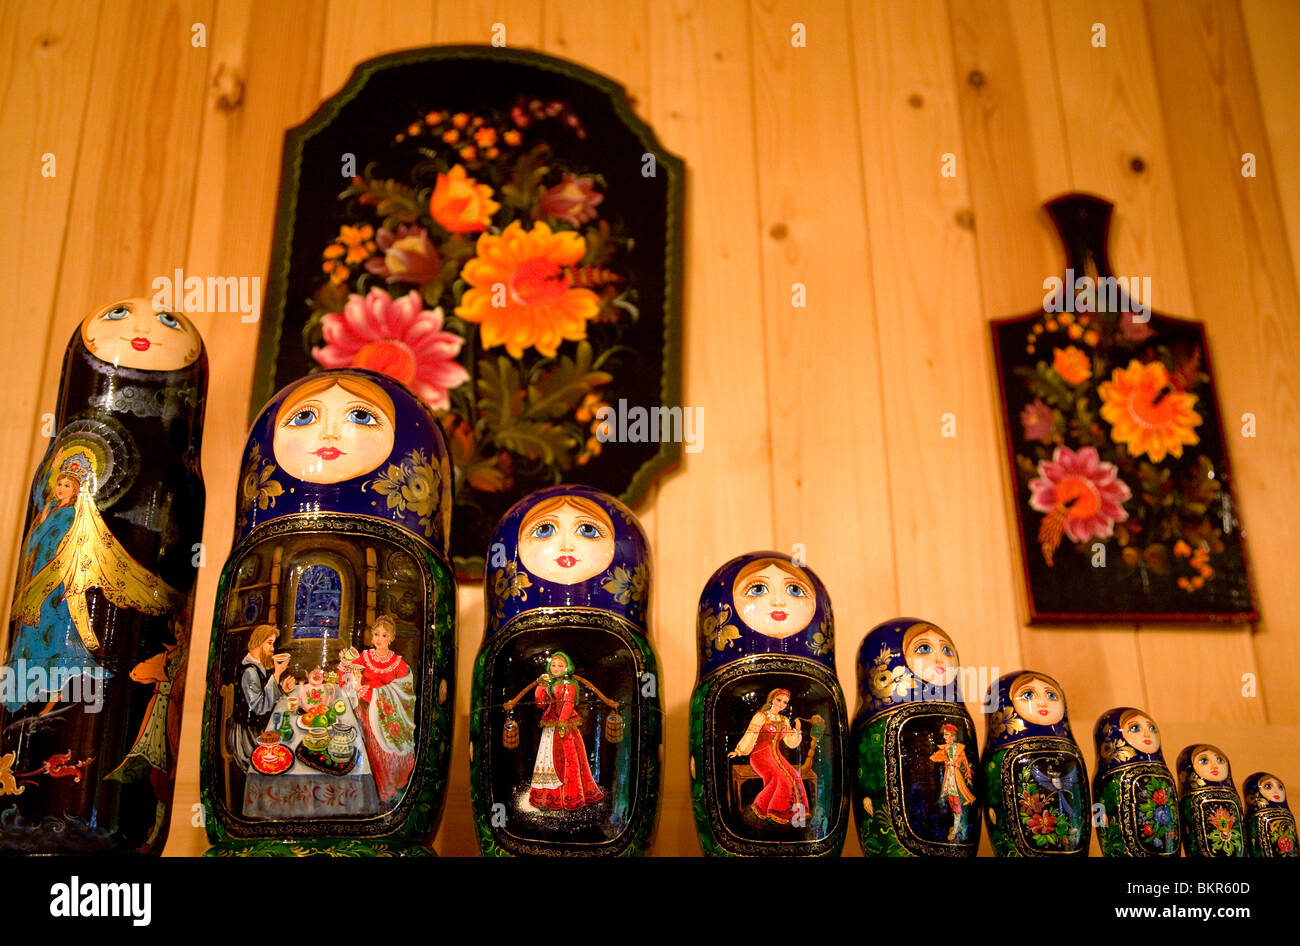 Russia, Leningrad Region, Podporozhsky. In Mandrogi, a crafts village on the Svir river. Matryshka Dolls. - Stock Image